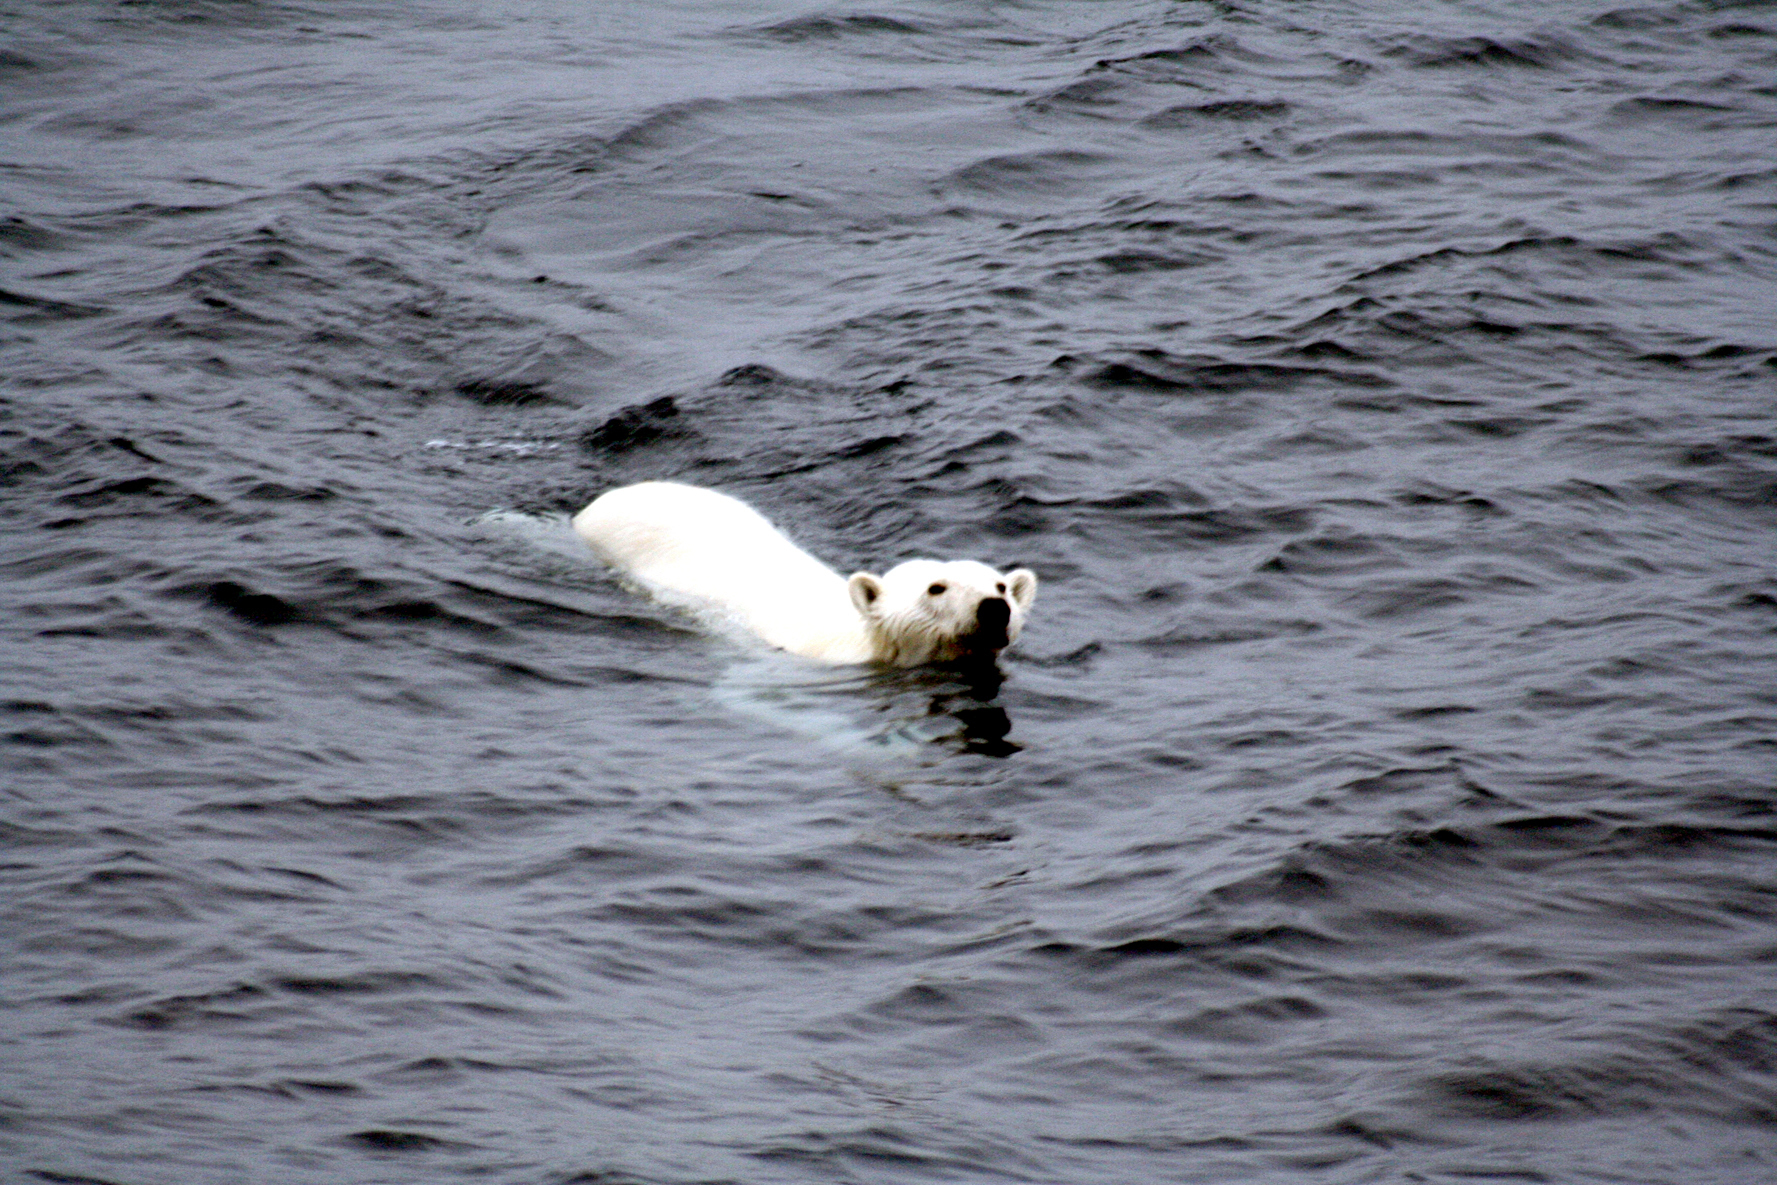 Arctic sea ice retreat pinned to individuals' emissions